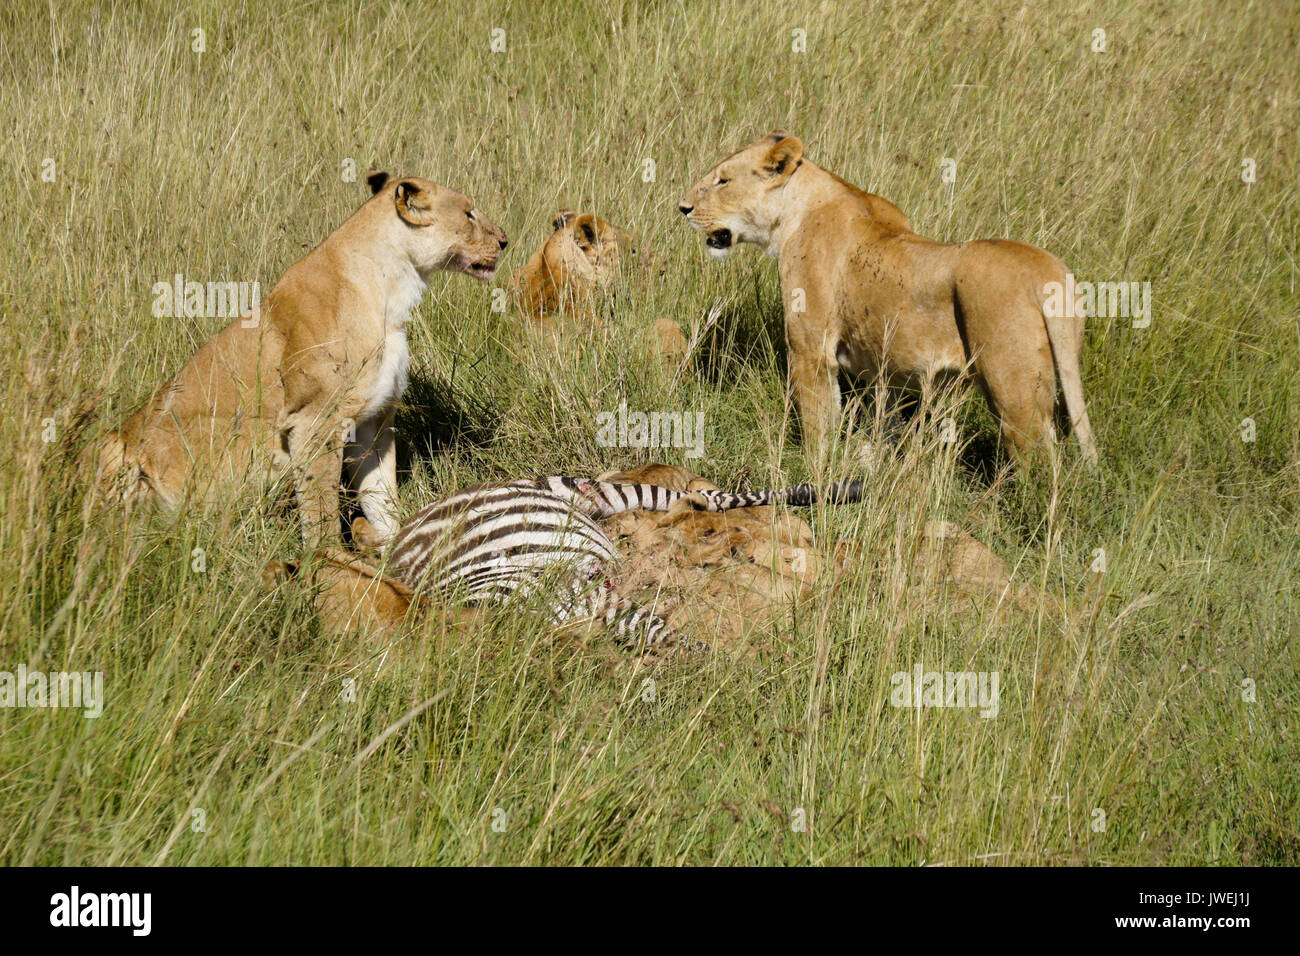 Lion pride (females and cubs) on a zebra kill at midday, with flies, Masai Mara Game Reserve, Kenya - Stock Image